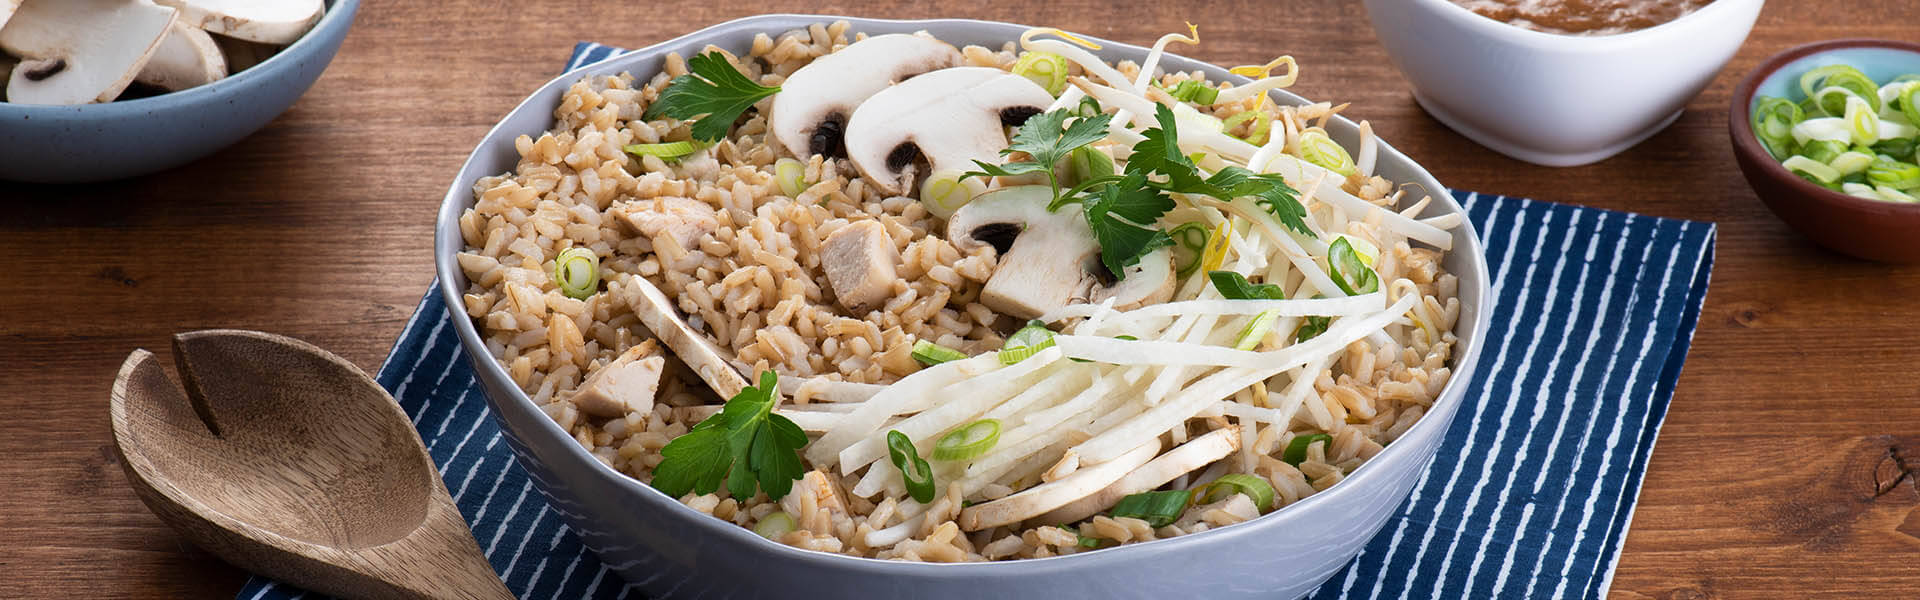 Asian Chicken and Rice Salad with Spicy Peanut Sauce